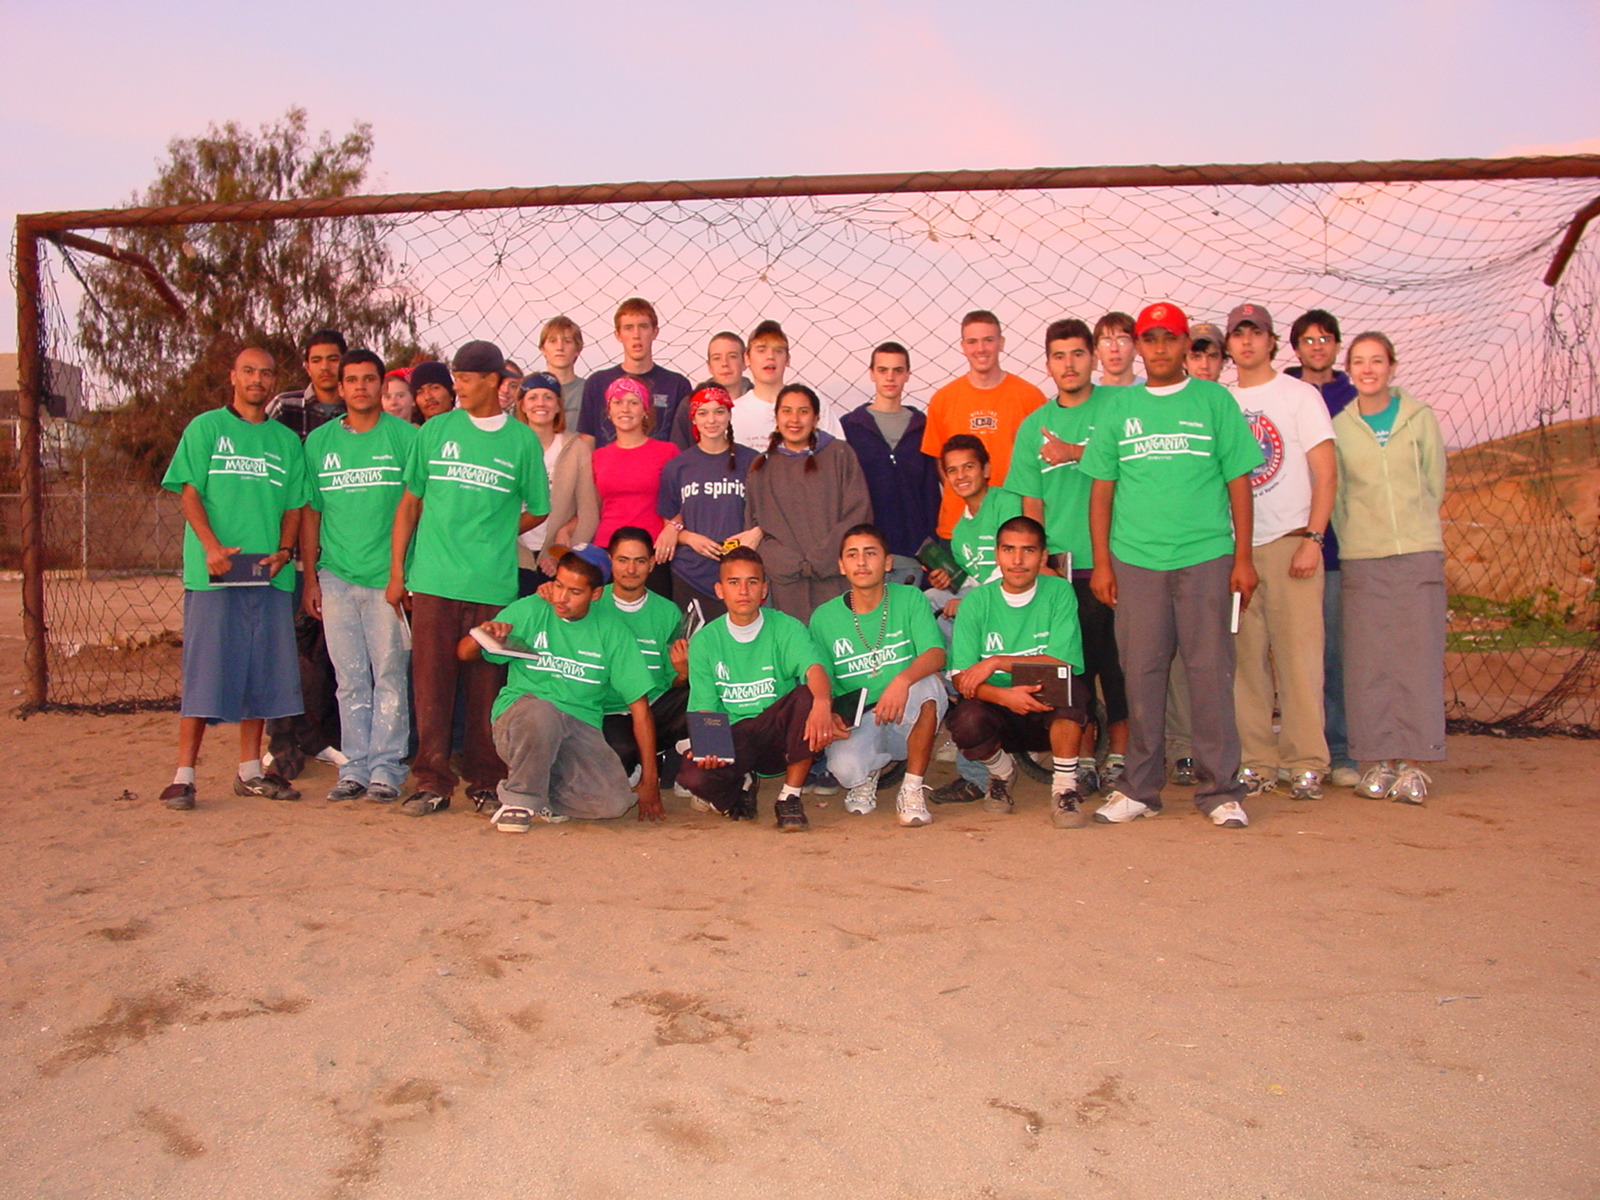 SLAM Mission participants and the Margaritas team, 2003.